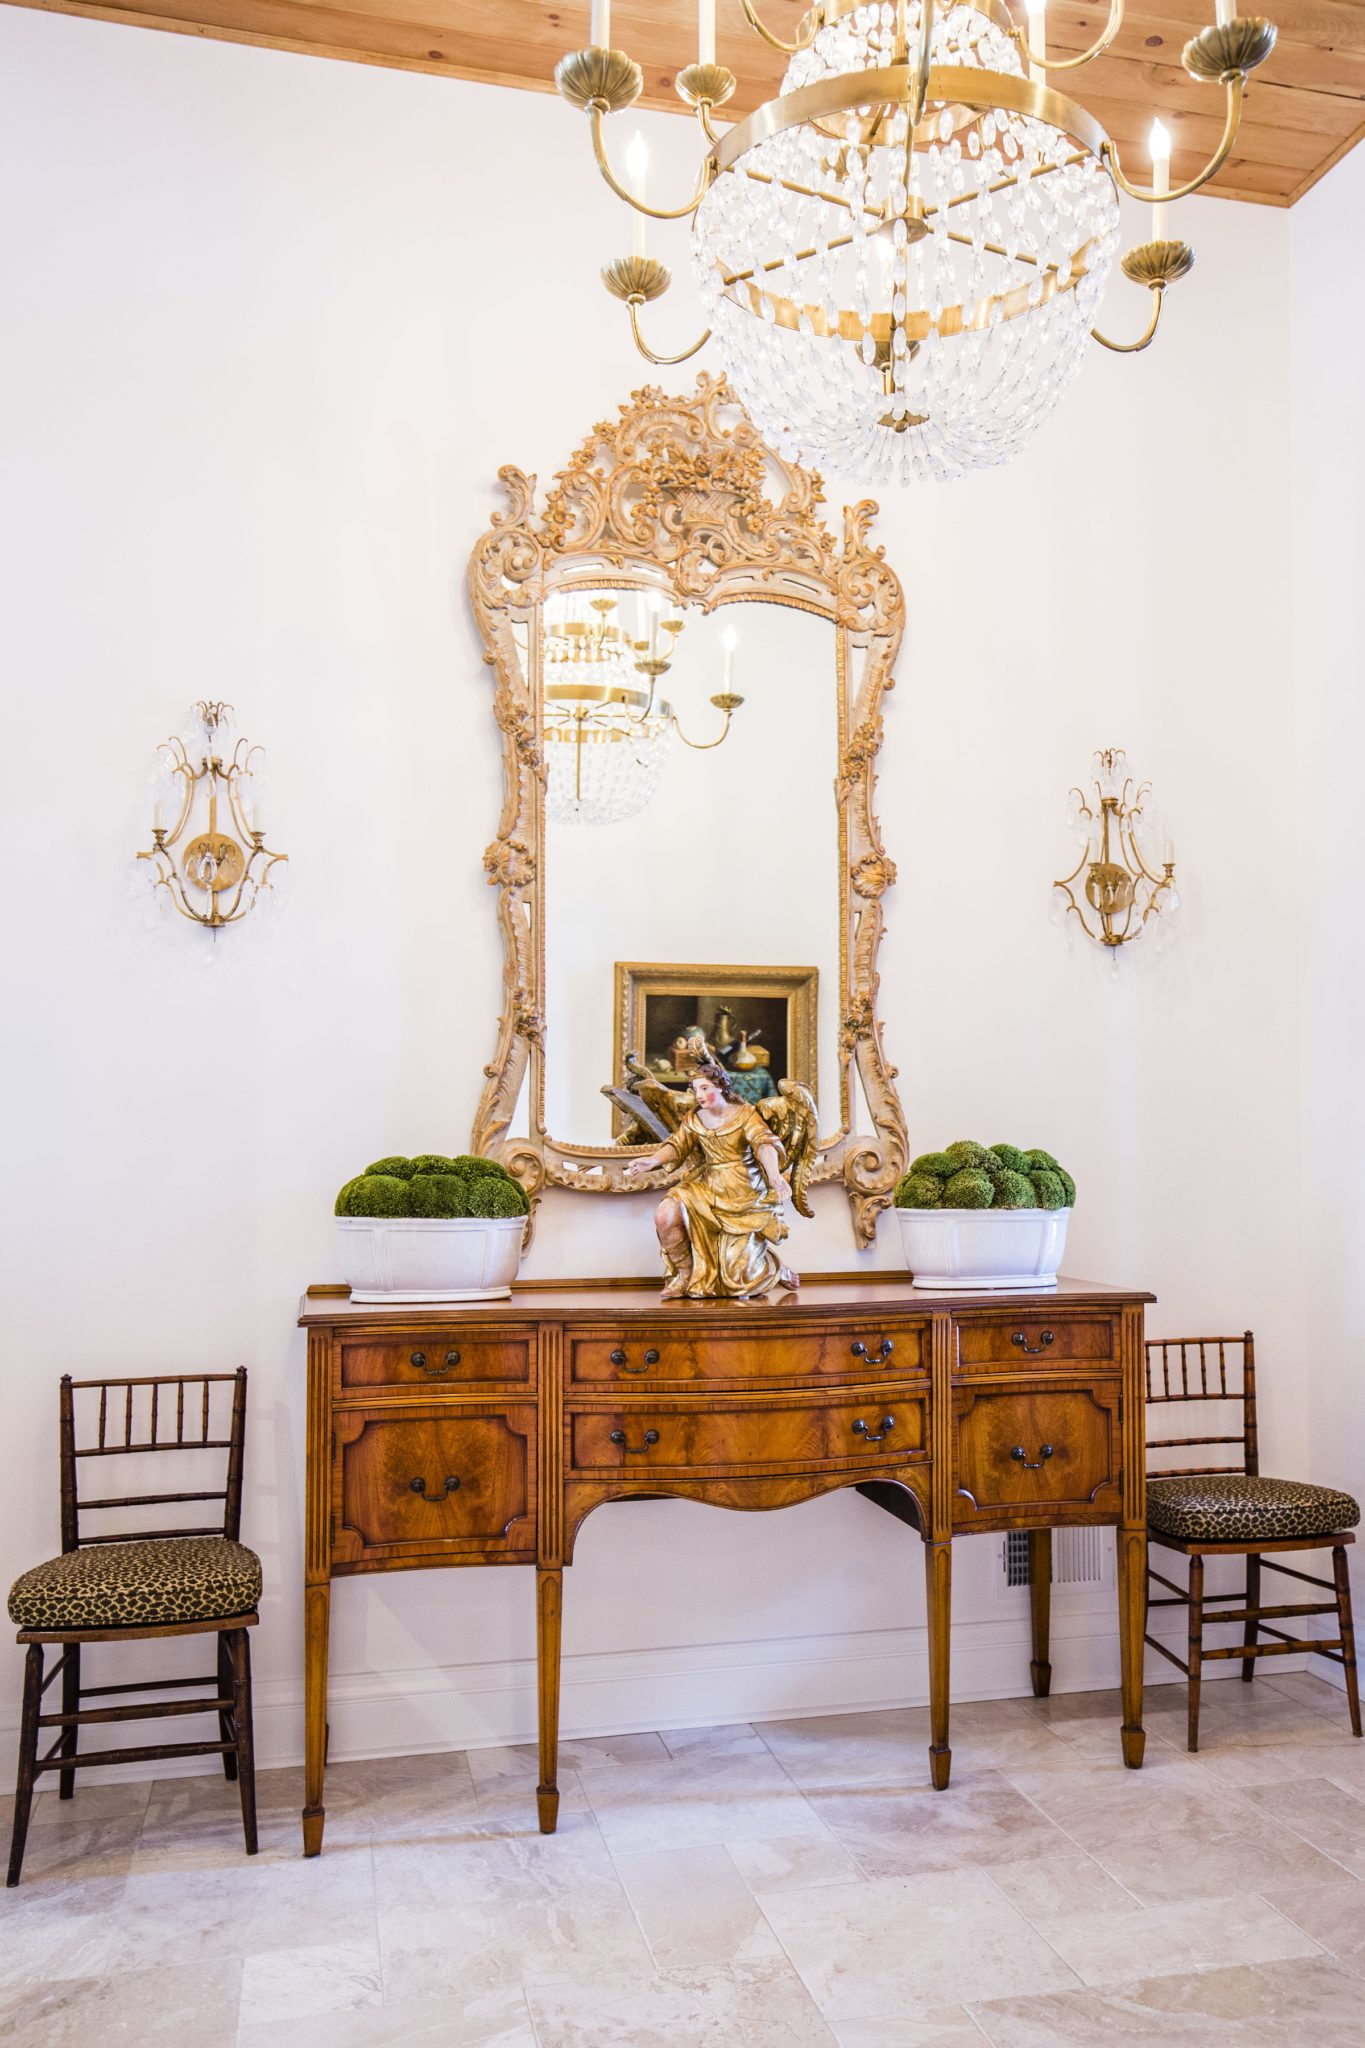 Country French Foyer with Gold Rococo Mirror and Crystal Chandelier by LSM Interior Design